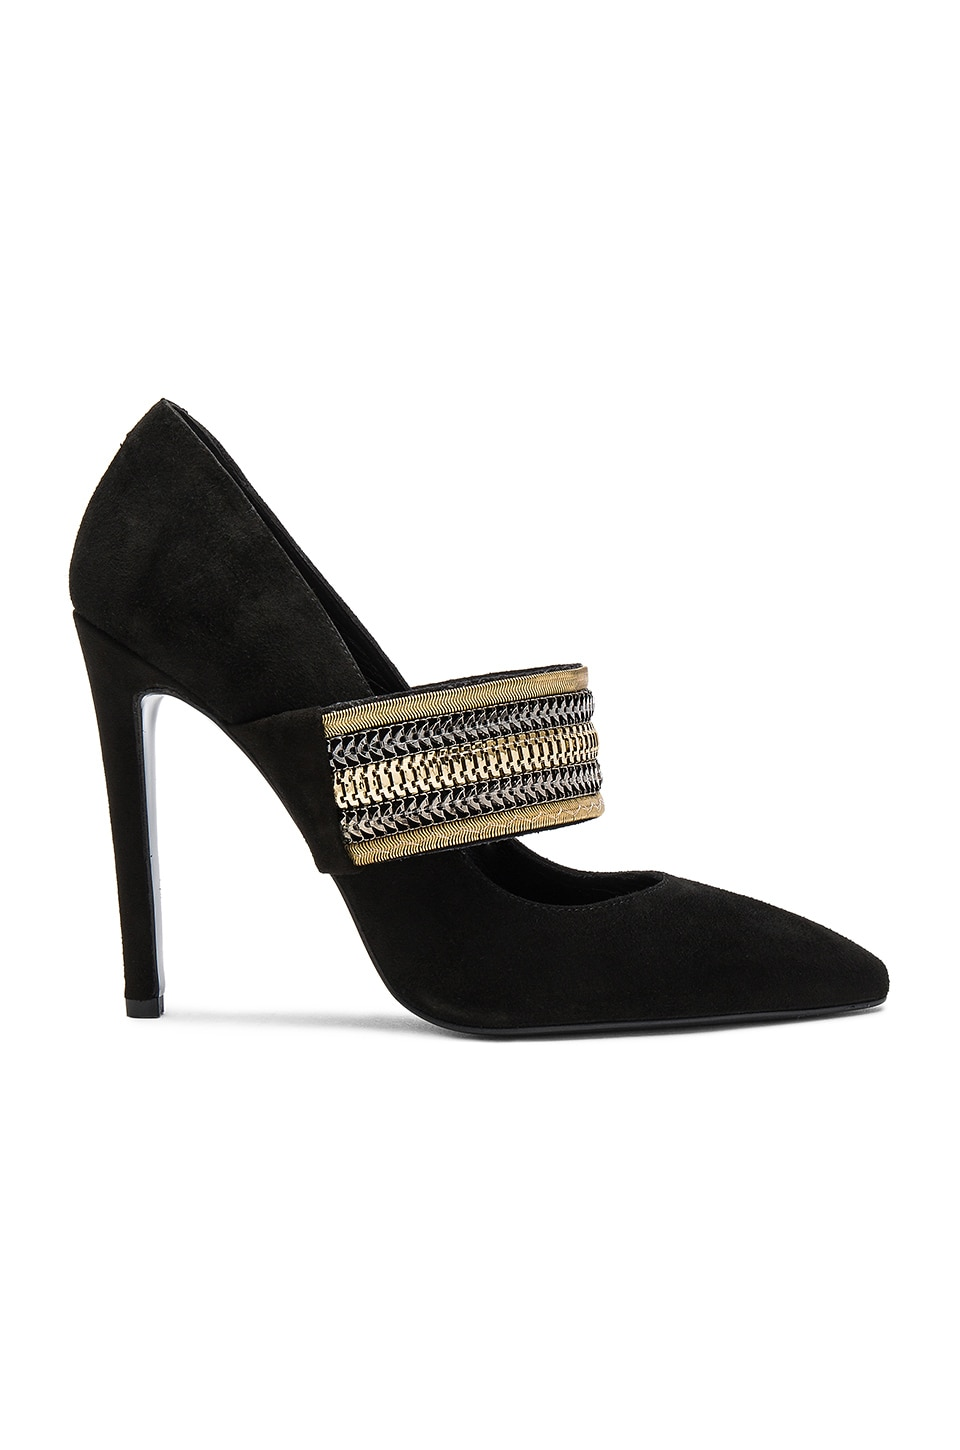 Pierre Balmain Embellished Heel in Black